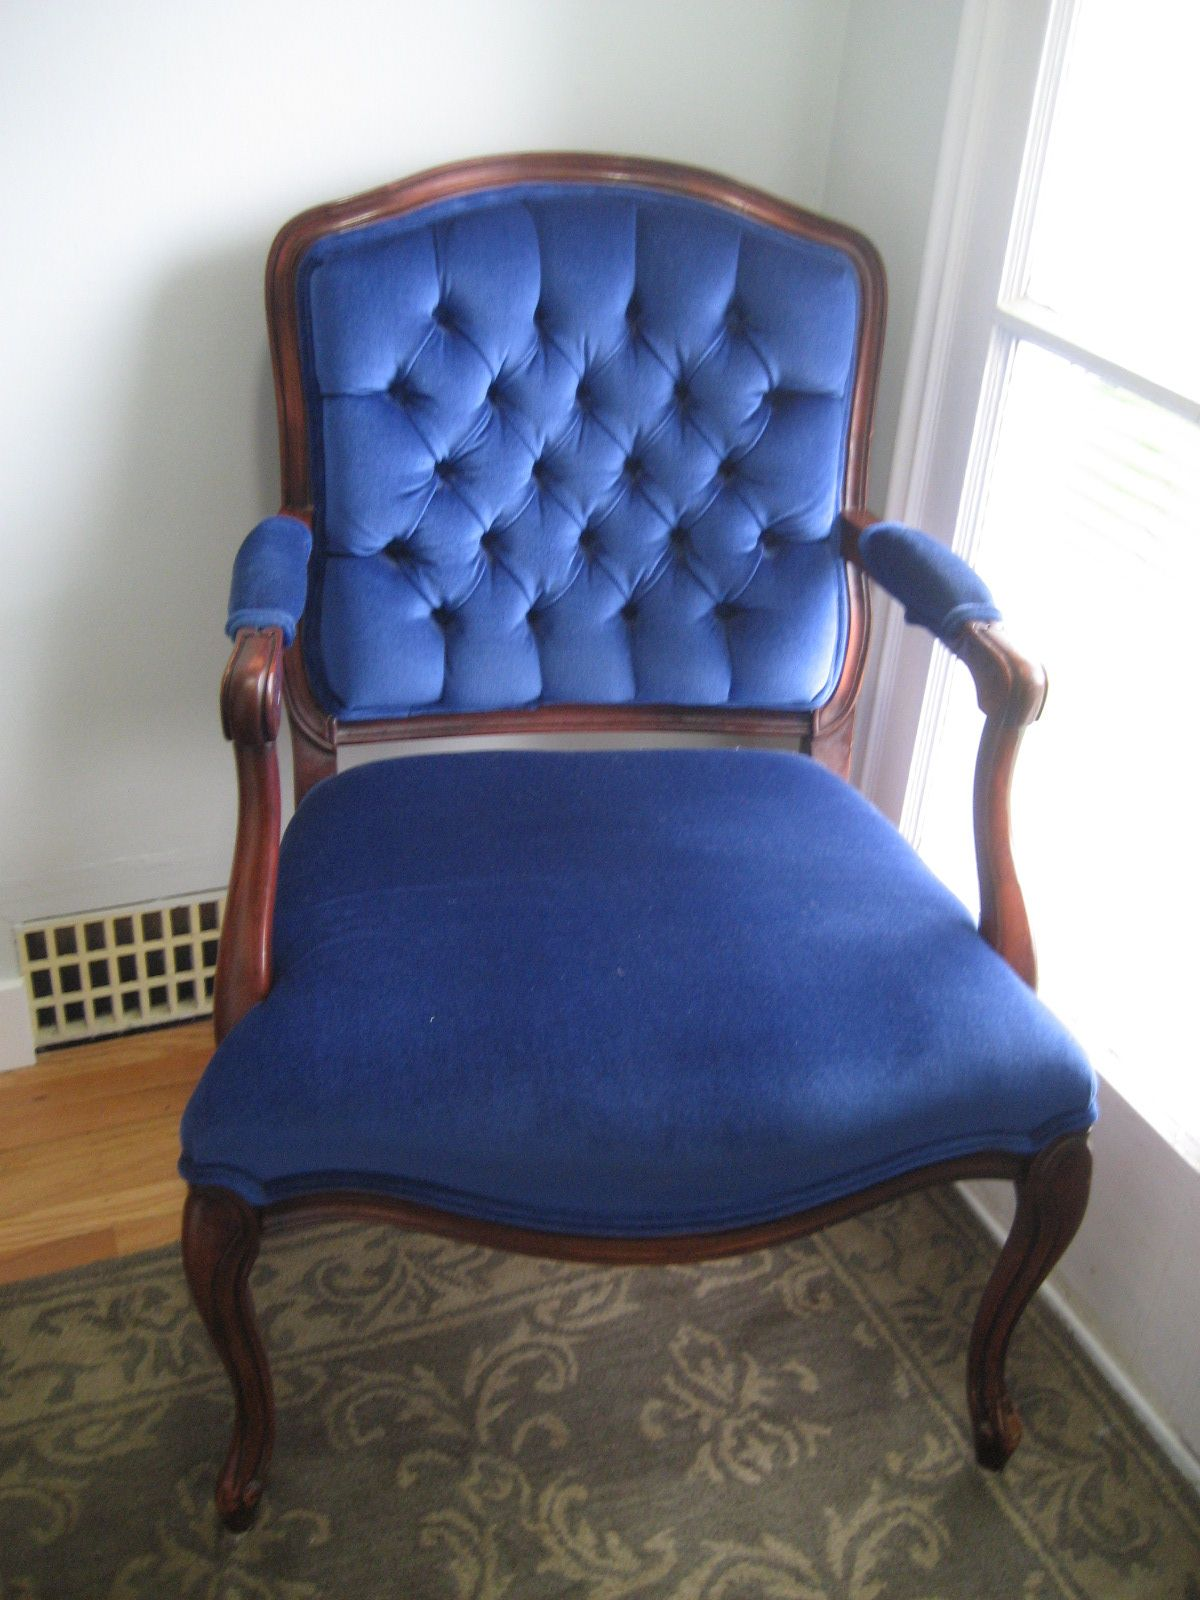 Charmant I Have A Chair Iu0027m Going To Have Recovered In Blue Velvet